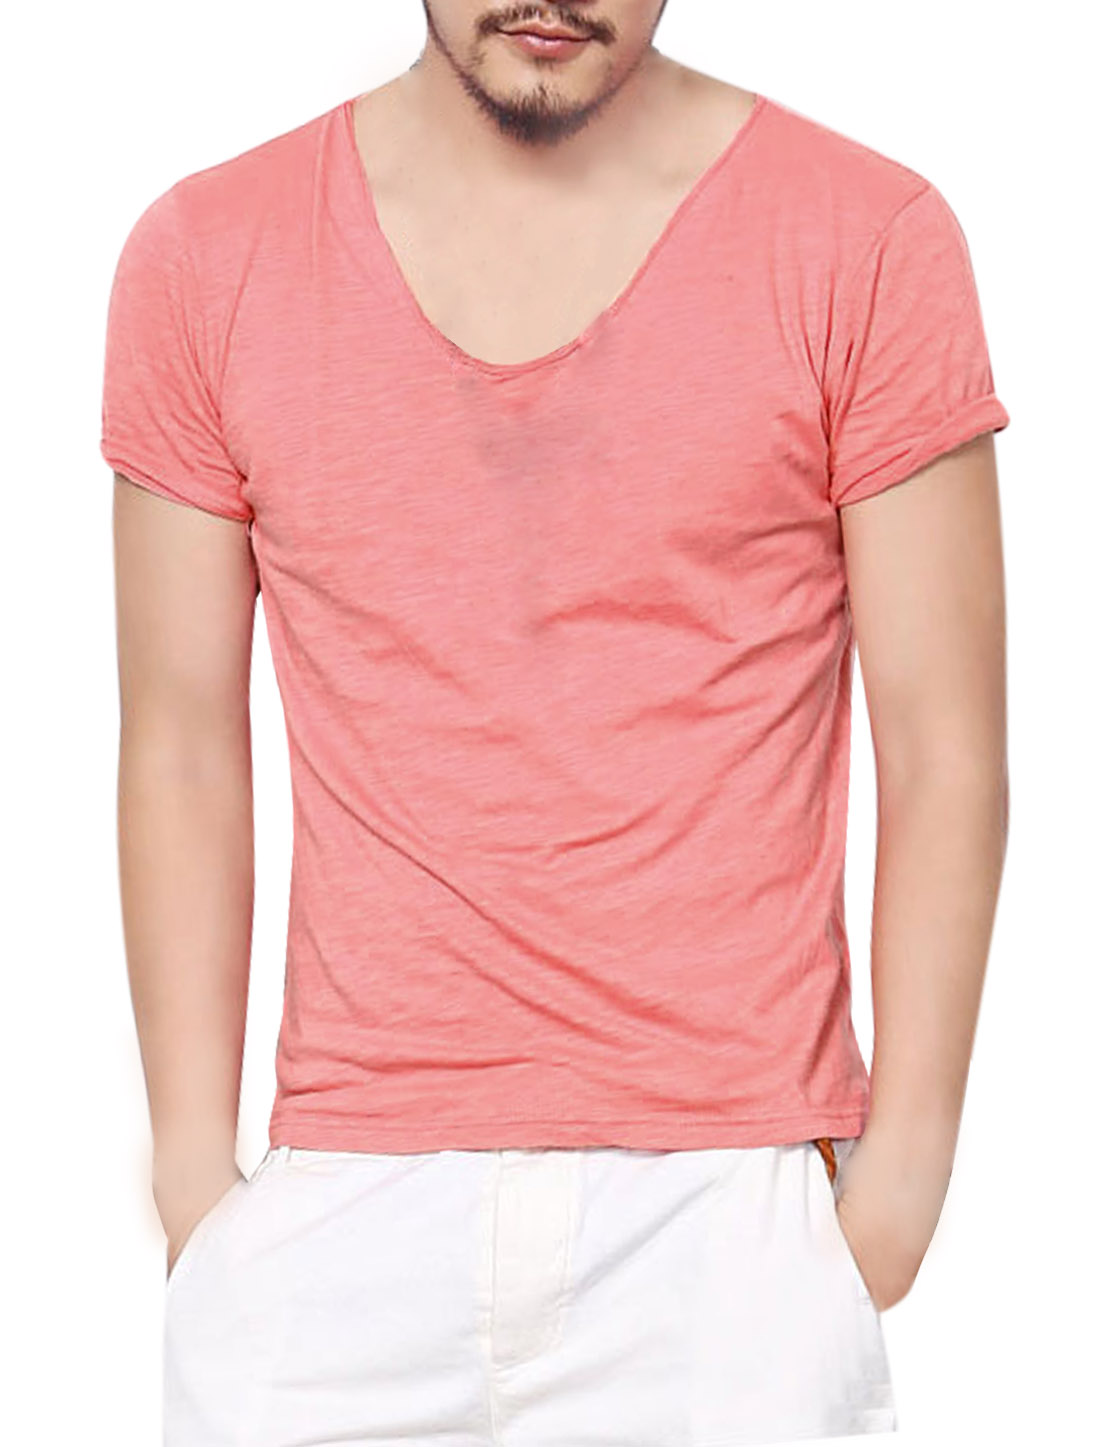 Men Scoop Neck Summer Fit Tee Shirt Pink M